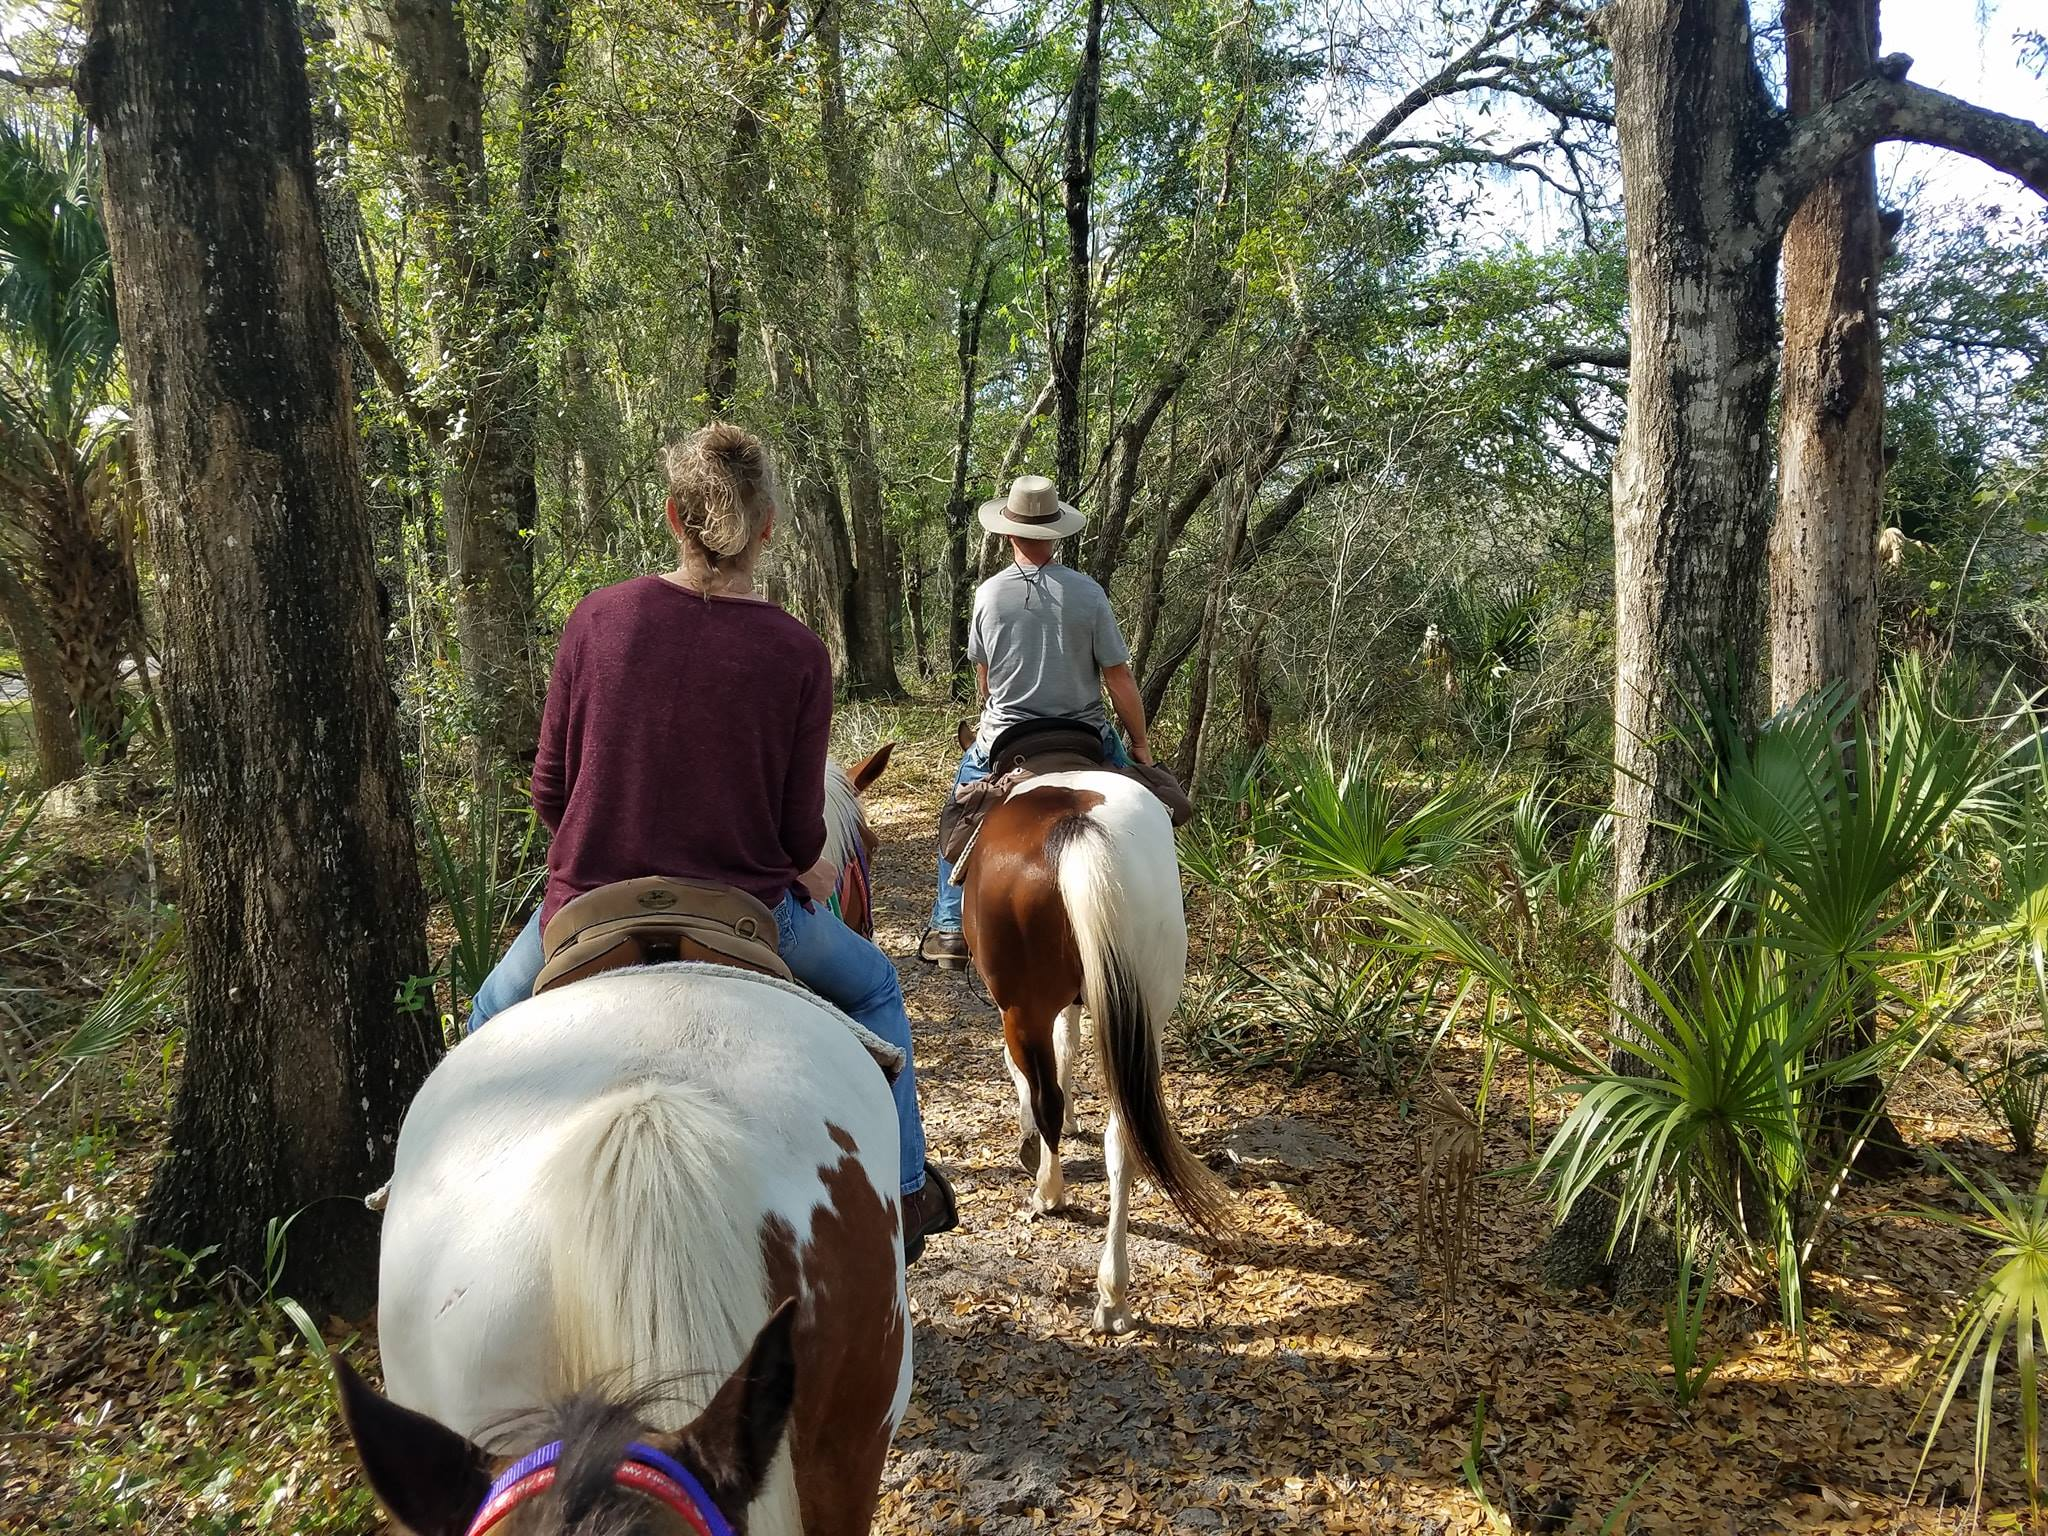 Horseback riding group riding through a wooded trail